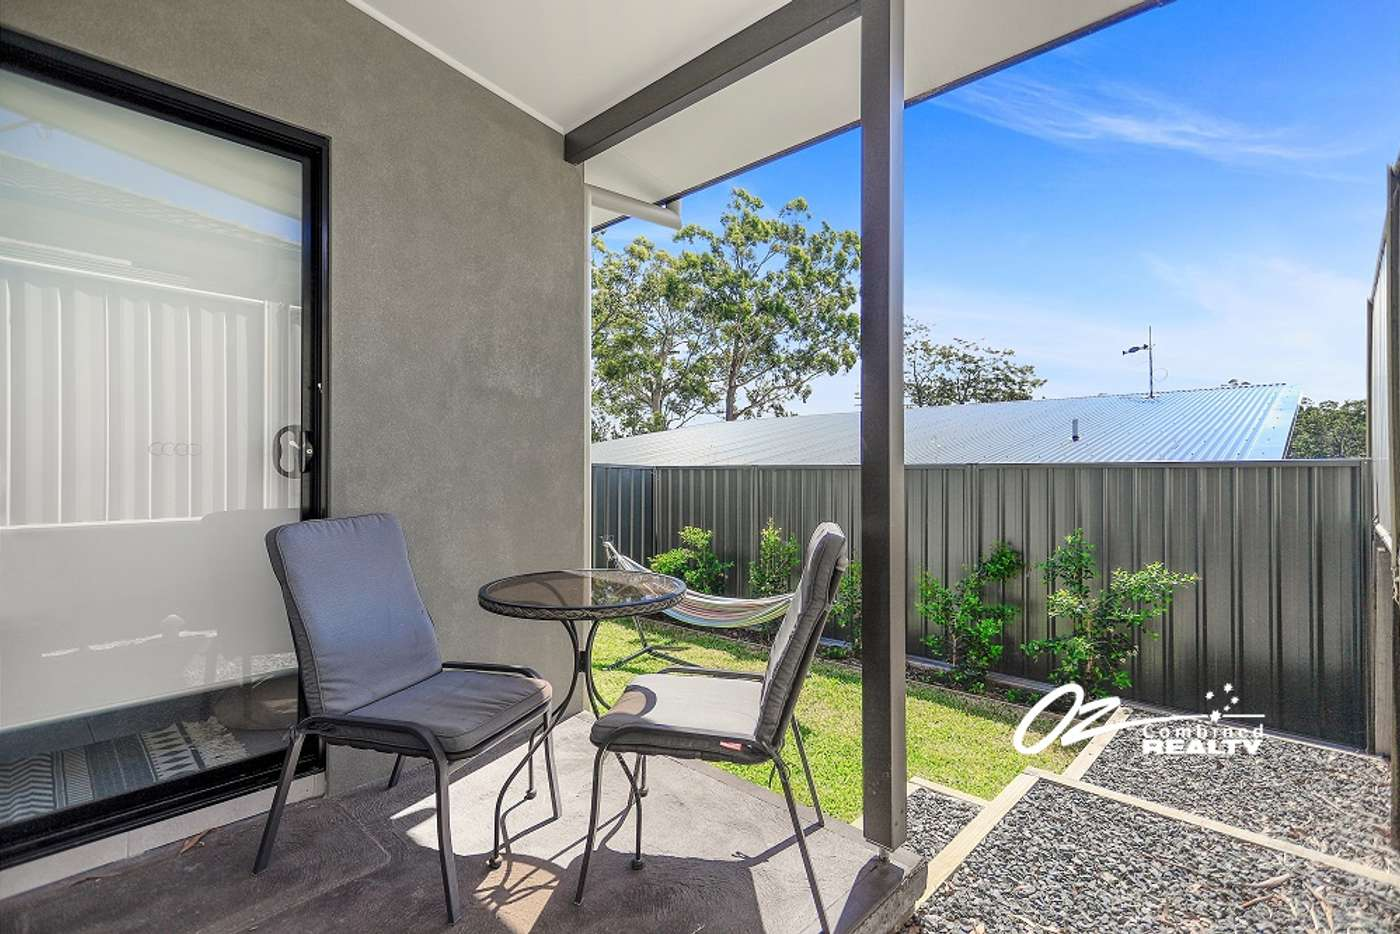 Sixth view of Homely villa listing, 3/26-28 Frederick Street, Sanctuary Point NSW 2540